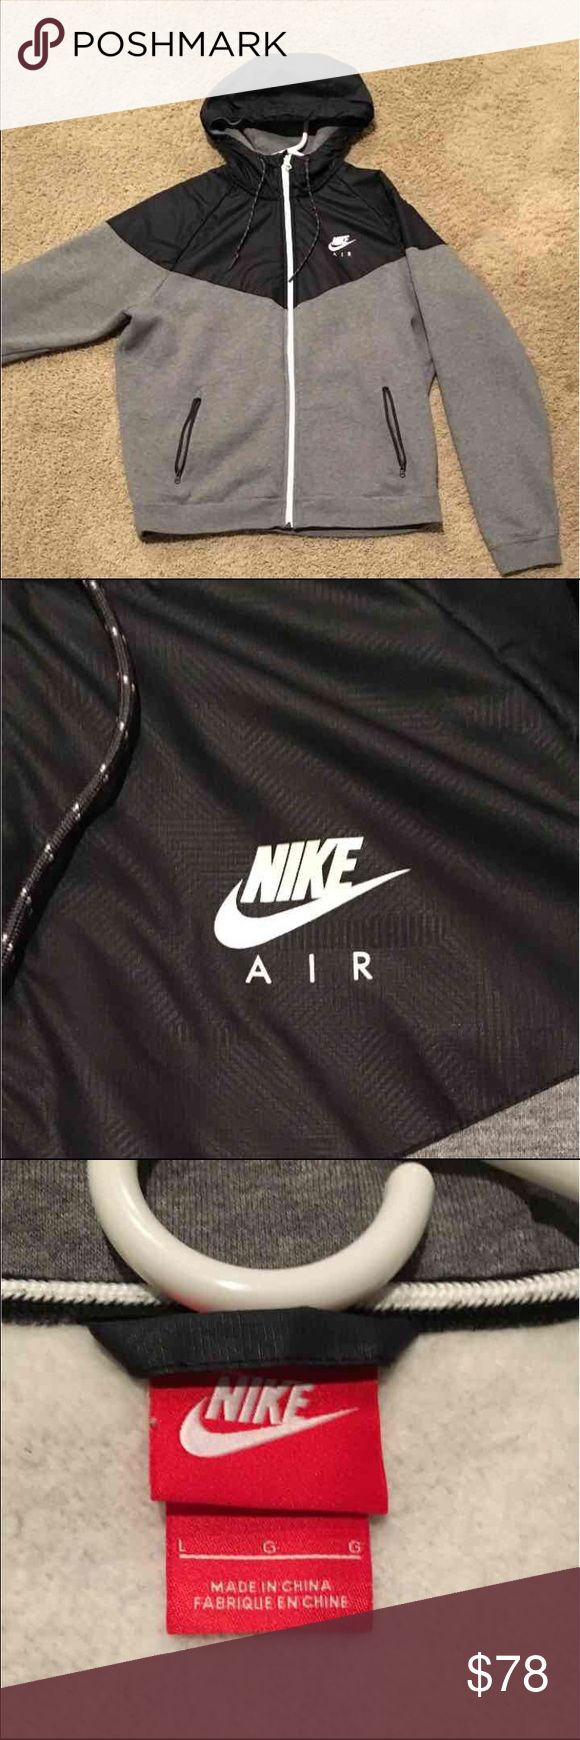 Grey and black Nike air jacket Excellent condition ~ worn 3 times  Thick, high-quality coat  Zip-up jacket  Hooded  SIZE LARGE  sold out everywhere. RARE  Too small for my brother now- selling it for him  Thanks for looking feel free to ask questions :)  ORIGINALLY $110 Selling for 69 on merc :)  Nike. Lululemon. Adidas. Underarmour. Nike Jackets & Coats Performance Jackets